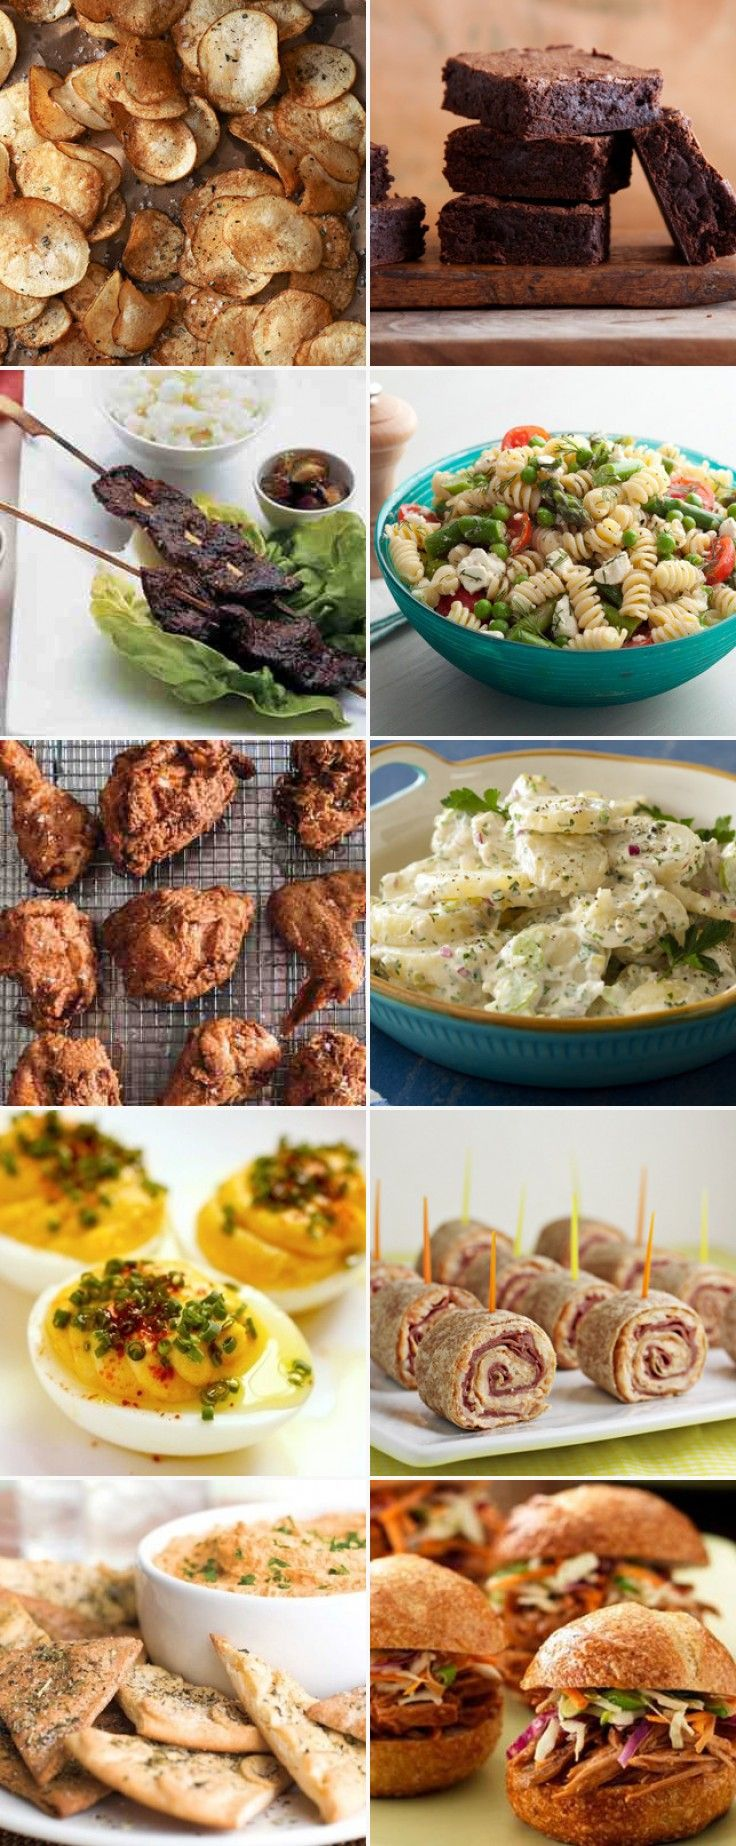 My Picks: Favorite Picnic Recipes #Fave402691